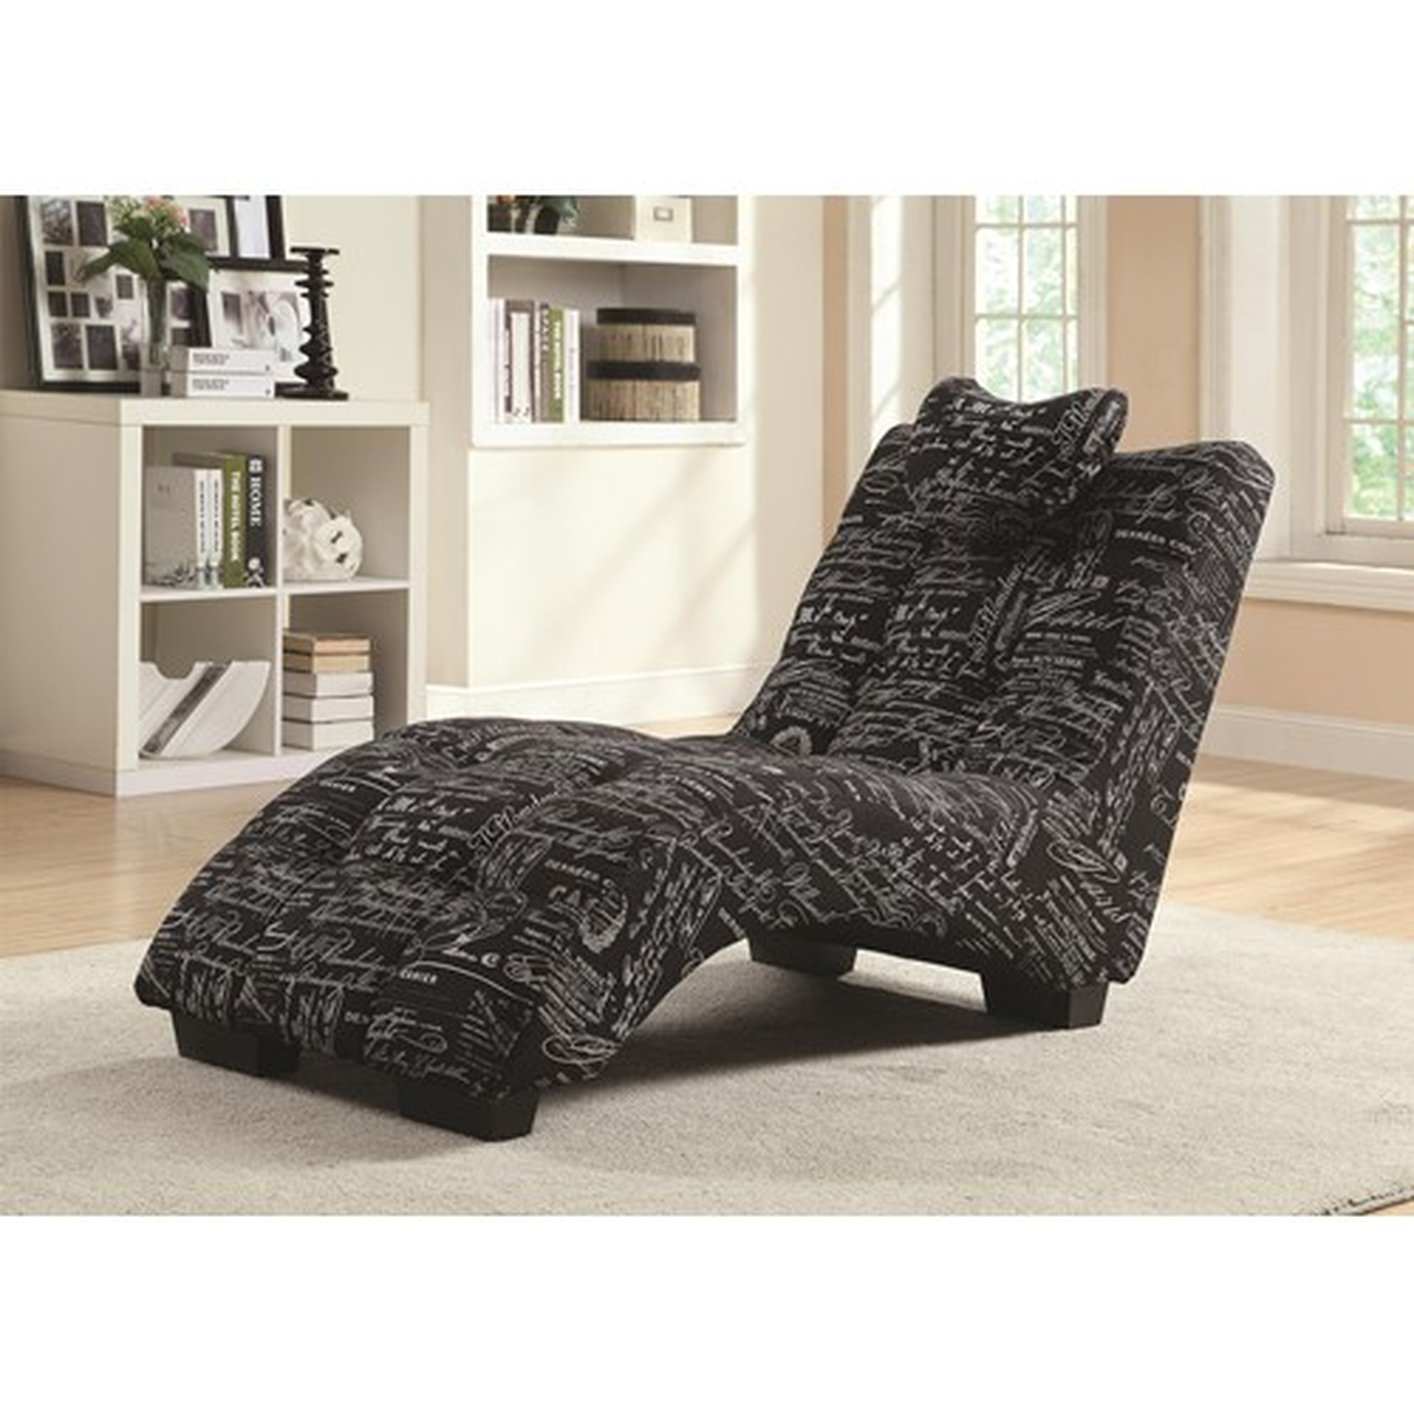 Black Fabric Chaise Lounge Black Fabric Chaise Lounge ...  sc 1 st  Steal-A-Sofa Furniture Outlet : fabric chaise lounge - Sectionals, Sofas & Couches